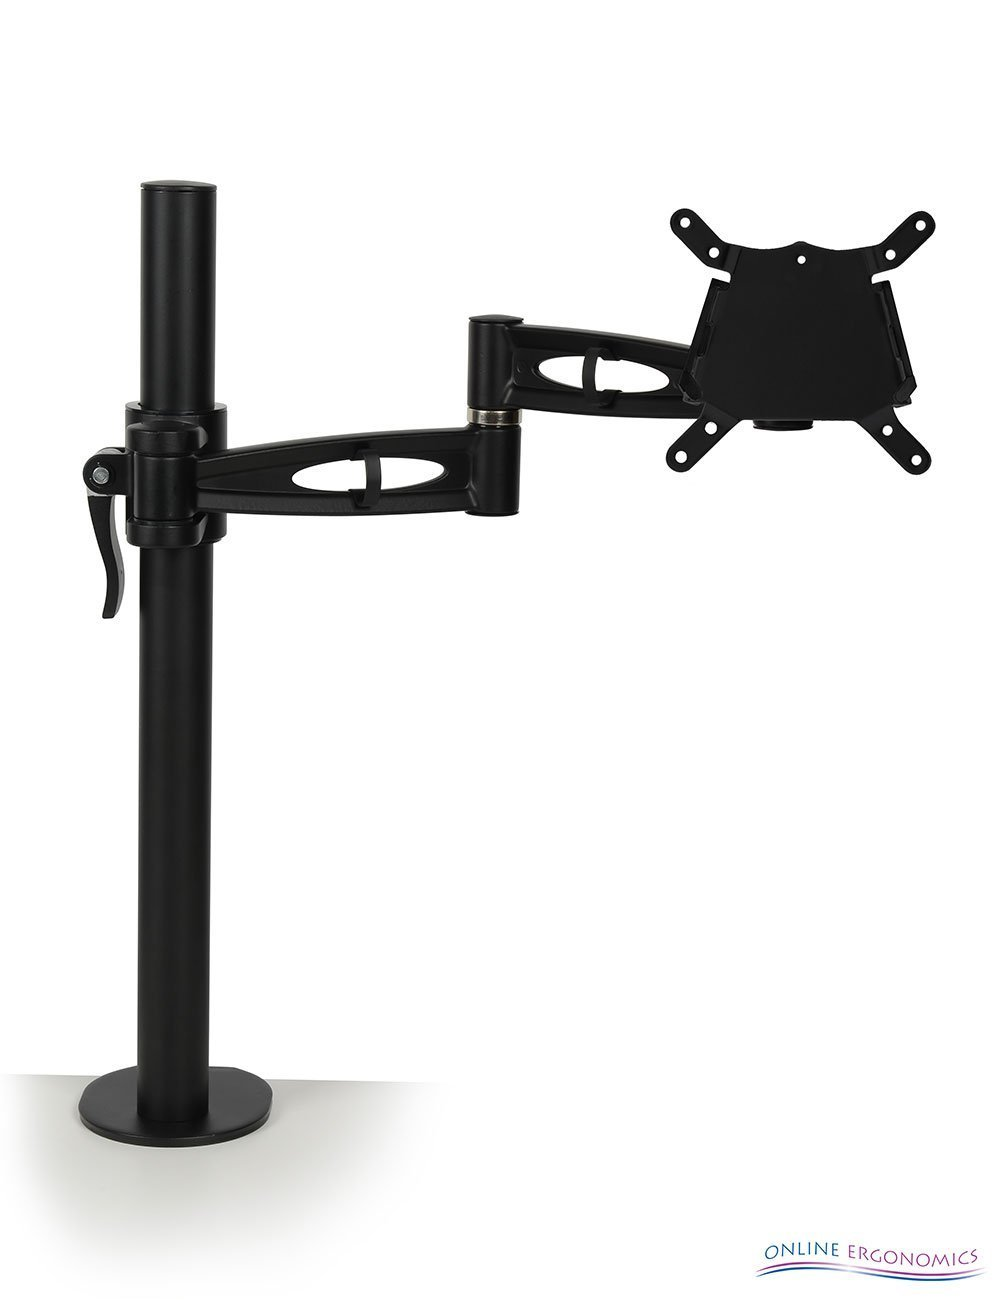 Industrial Ergonomic Arms : Single monitor arm online ergonomics